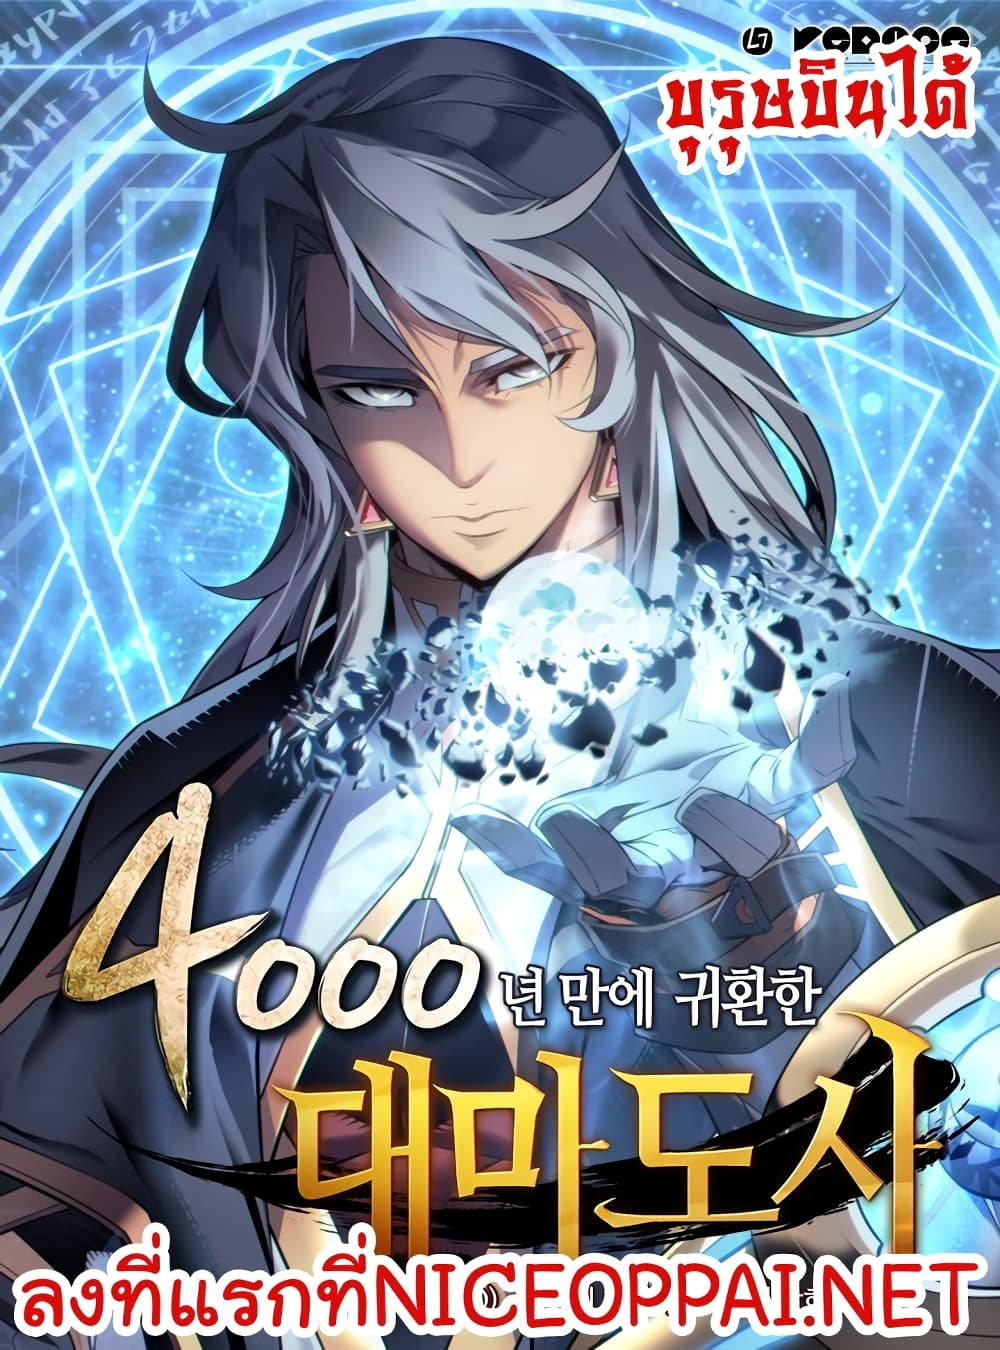 The Great Mage Returns After 4000 Years ตอนที่ 31